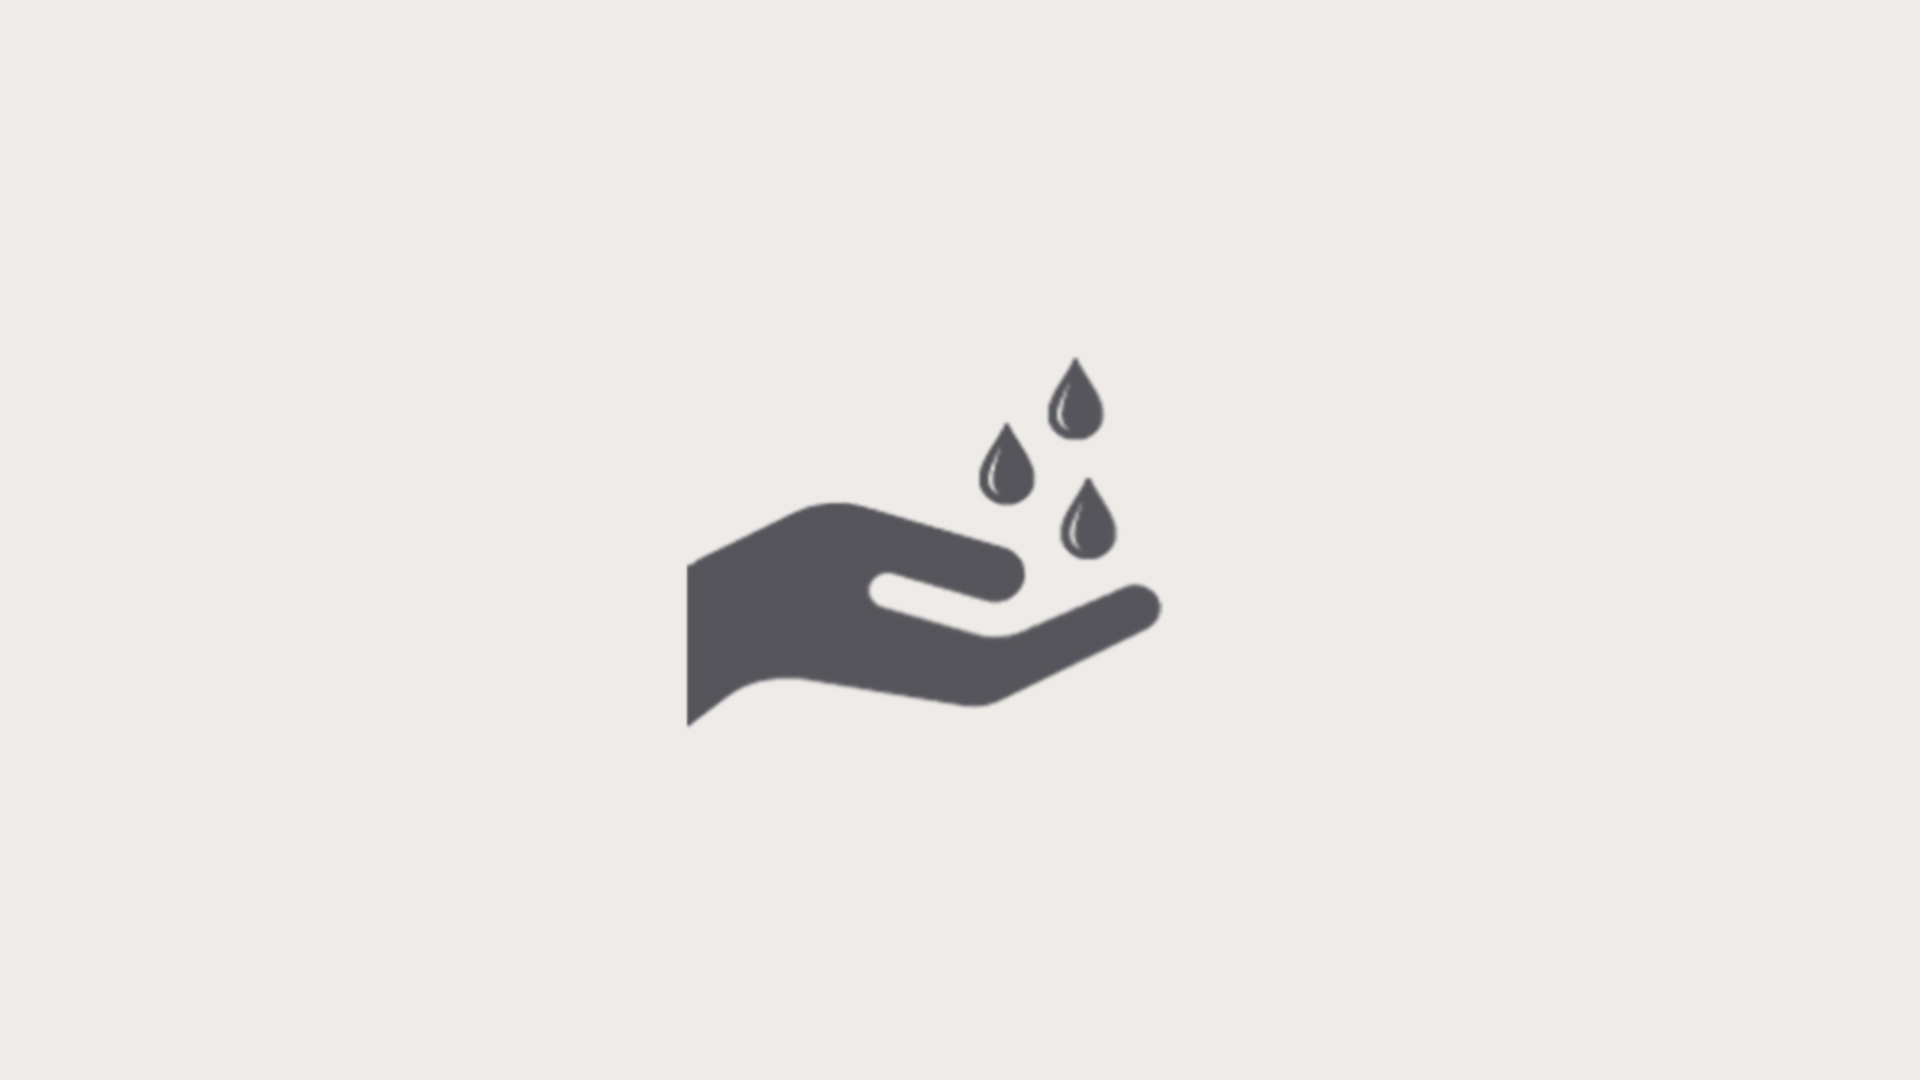 wet-hands-icon.jpg